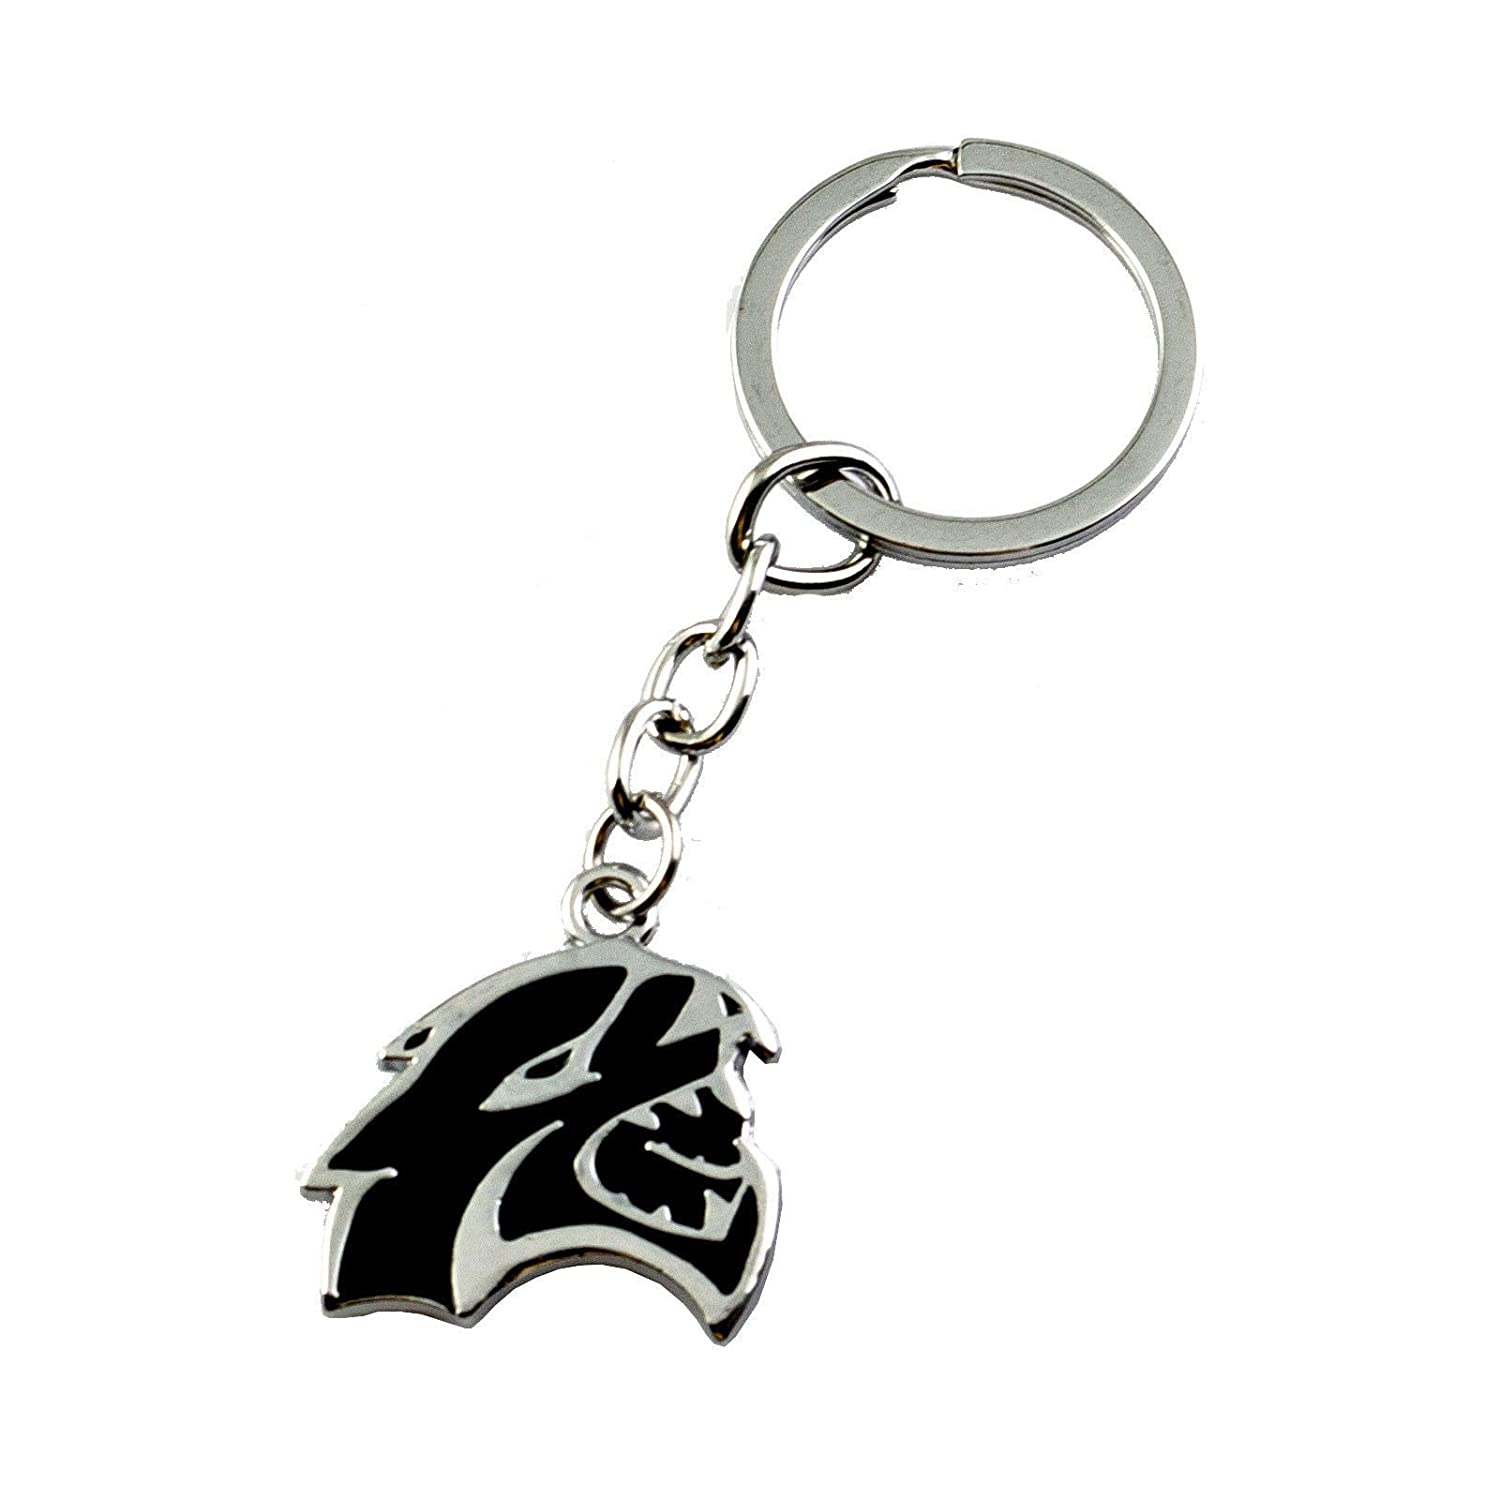 Xotic Tech 3D Hellcat Hell Cat Keychain Key Chain Fob Ring for Dodge Challenger Charger Xotic Tech Direct